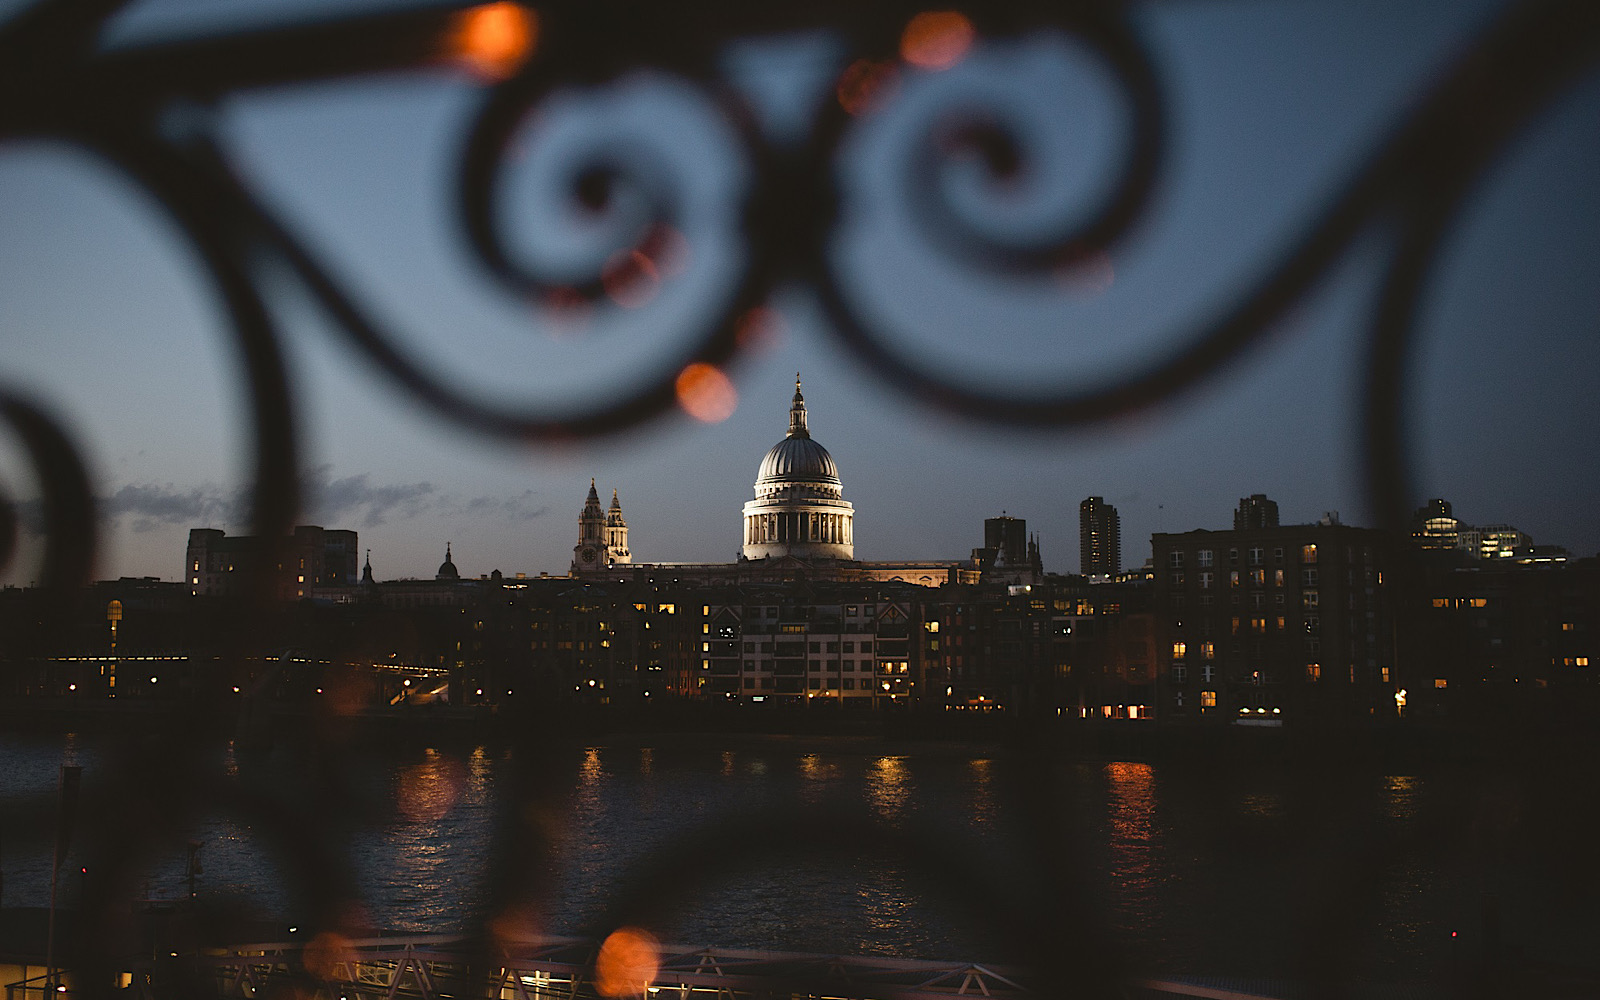 The view of St Paul's Cathedral over the River Thames at night